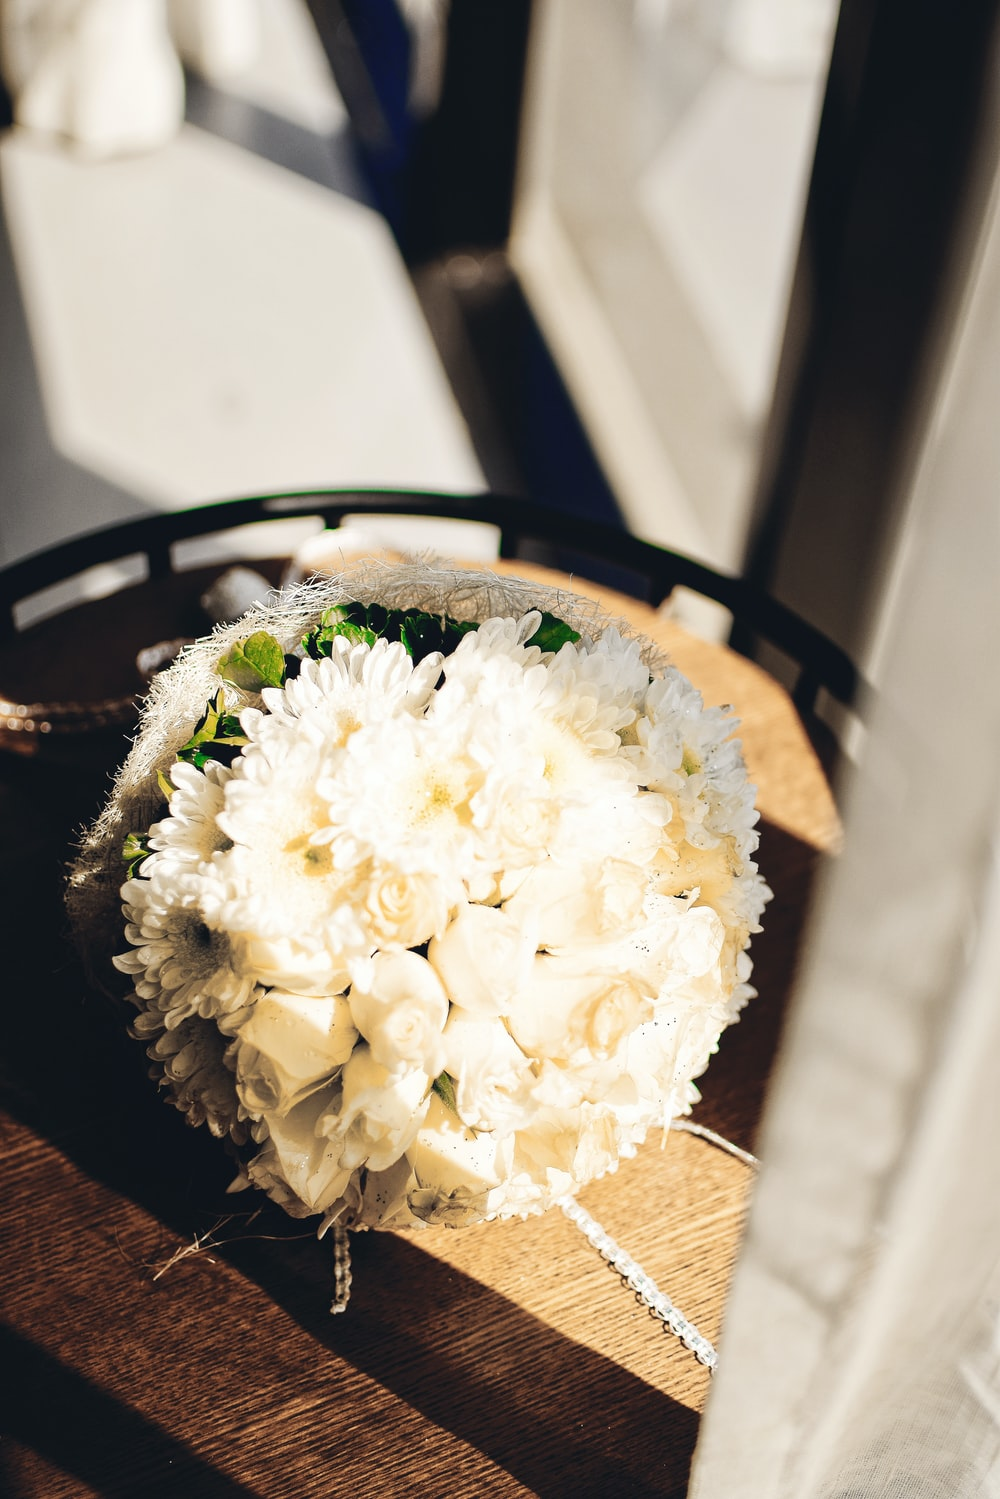 100 wedding flower pictures download free images on unsplash wedding flower pictures izmirmasajfo